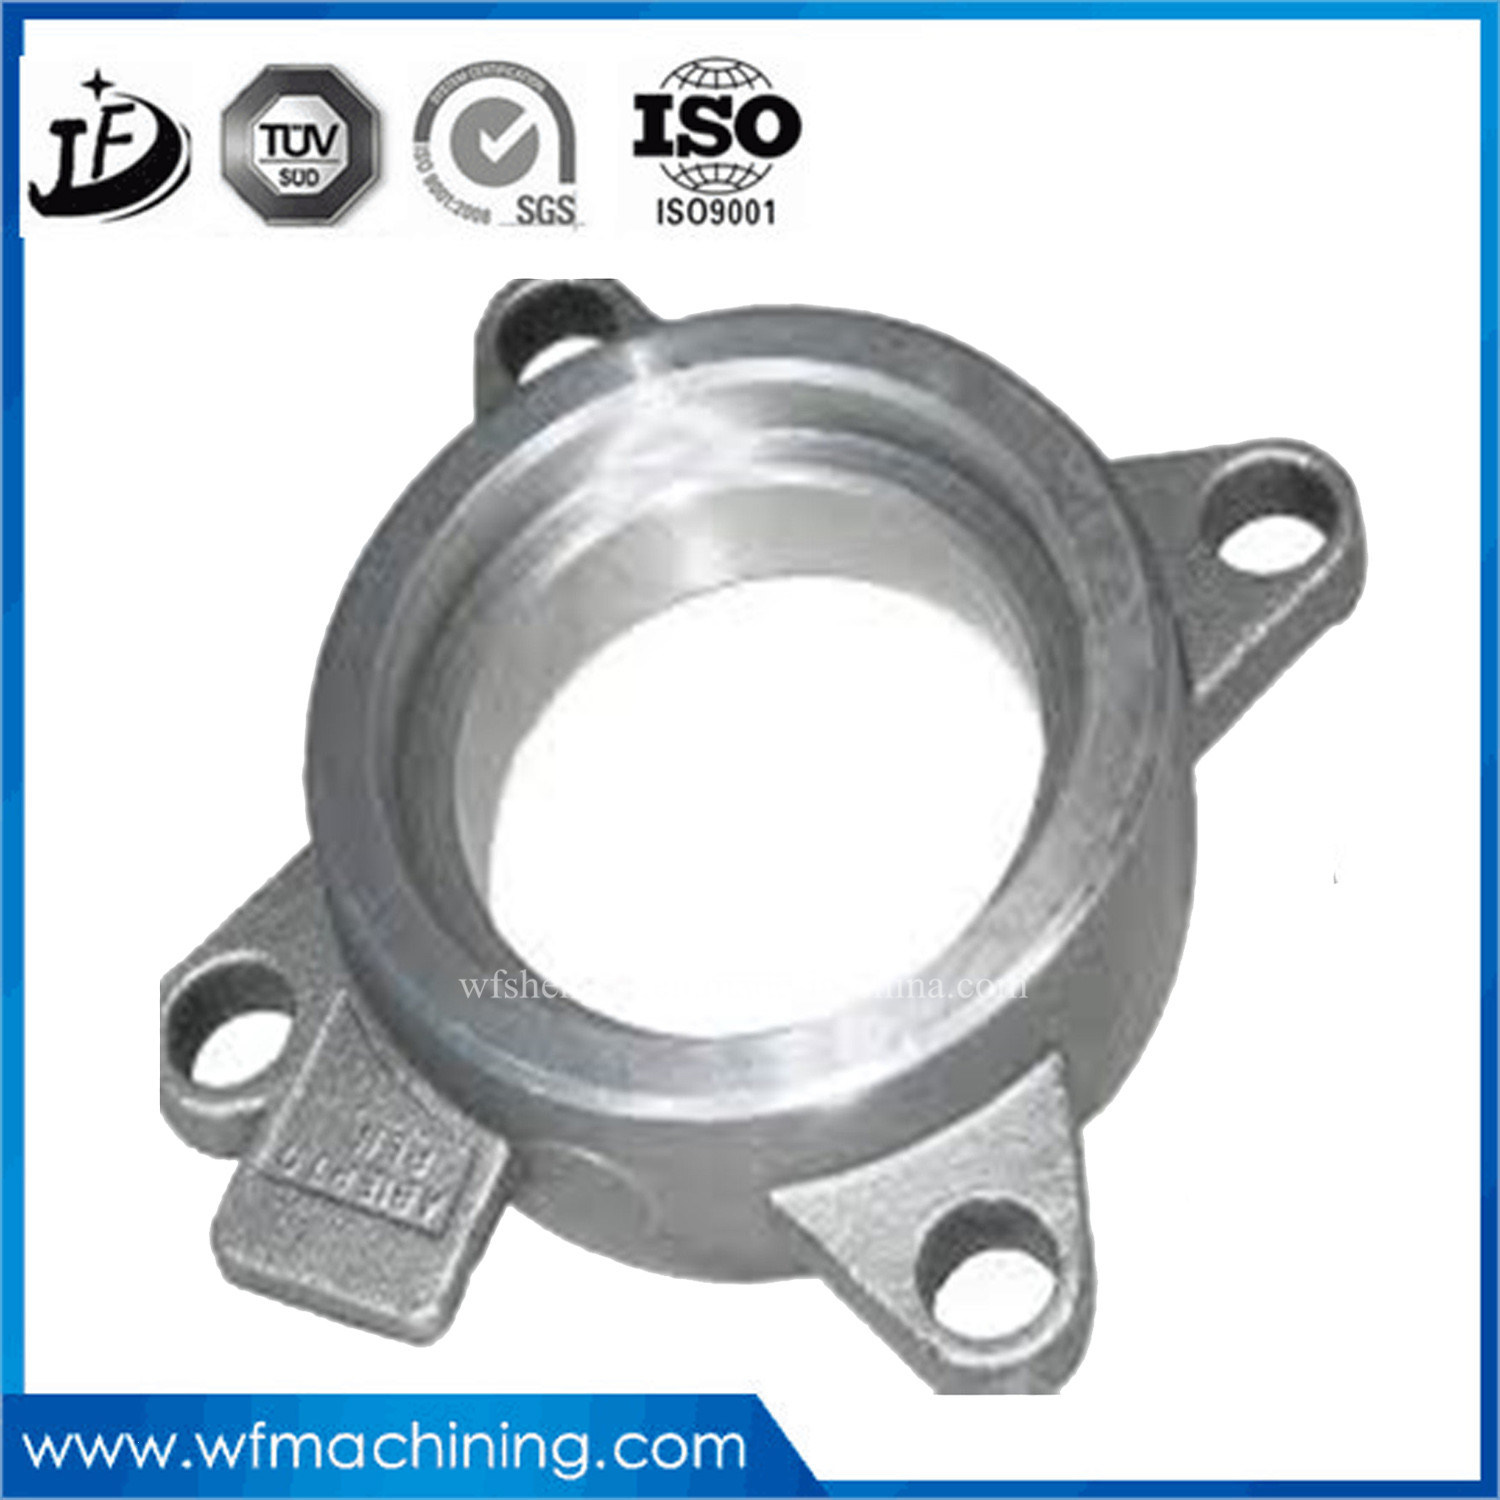 Customized Agriculture Machinery/Machiningmachined Forging Parts of Car/Motocycle